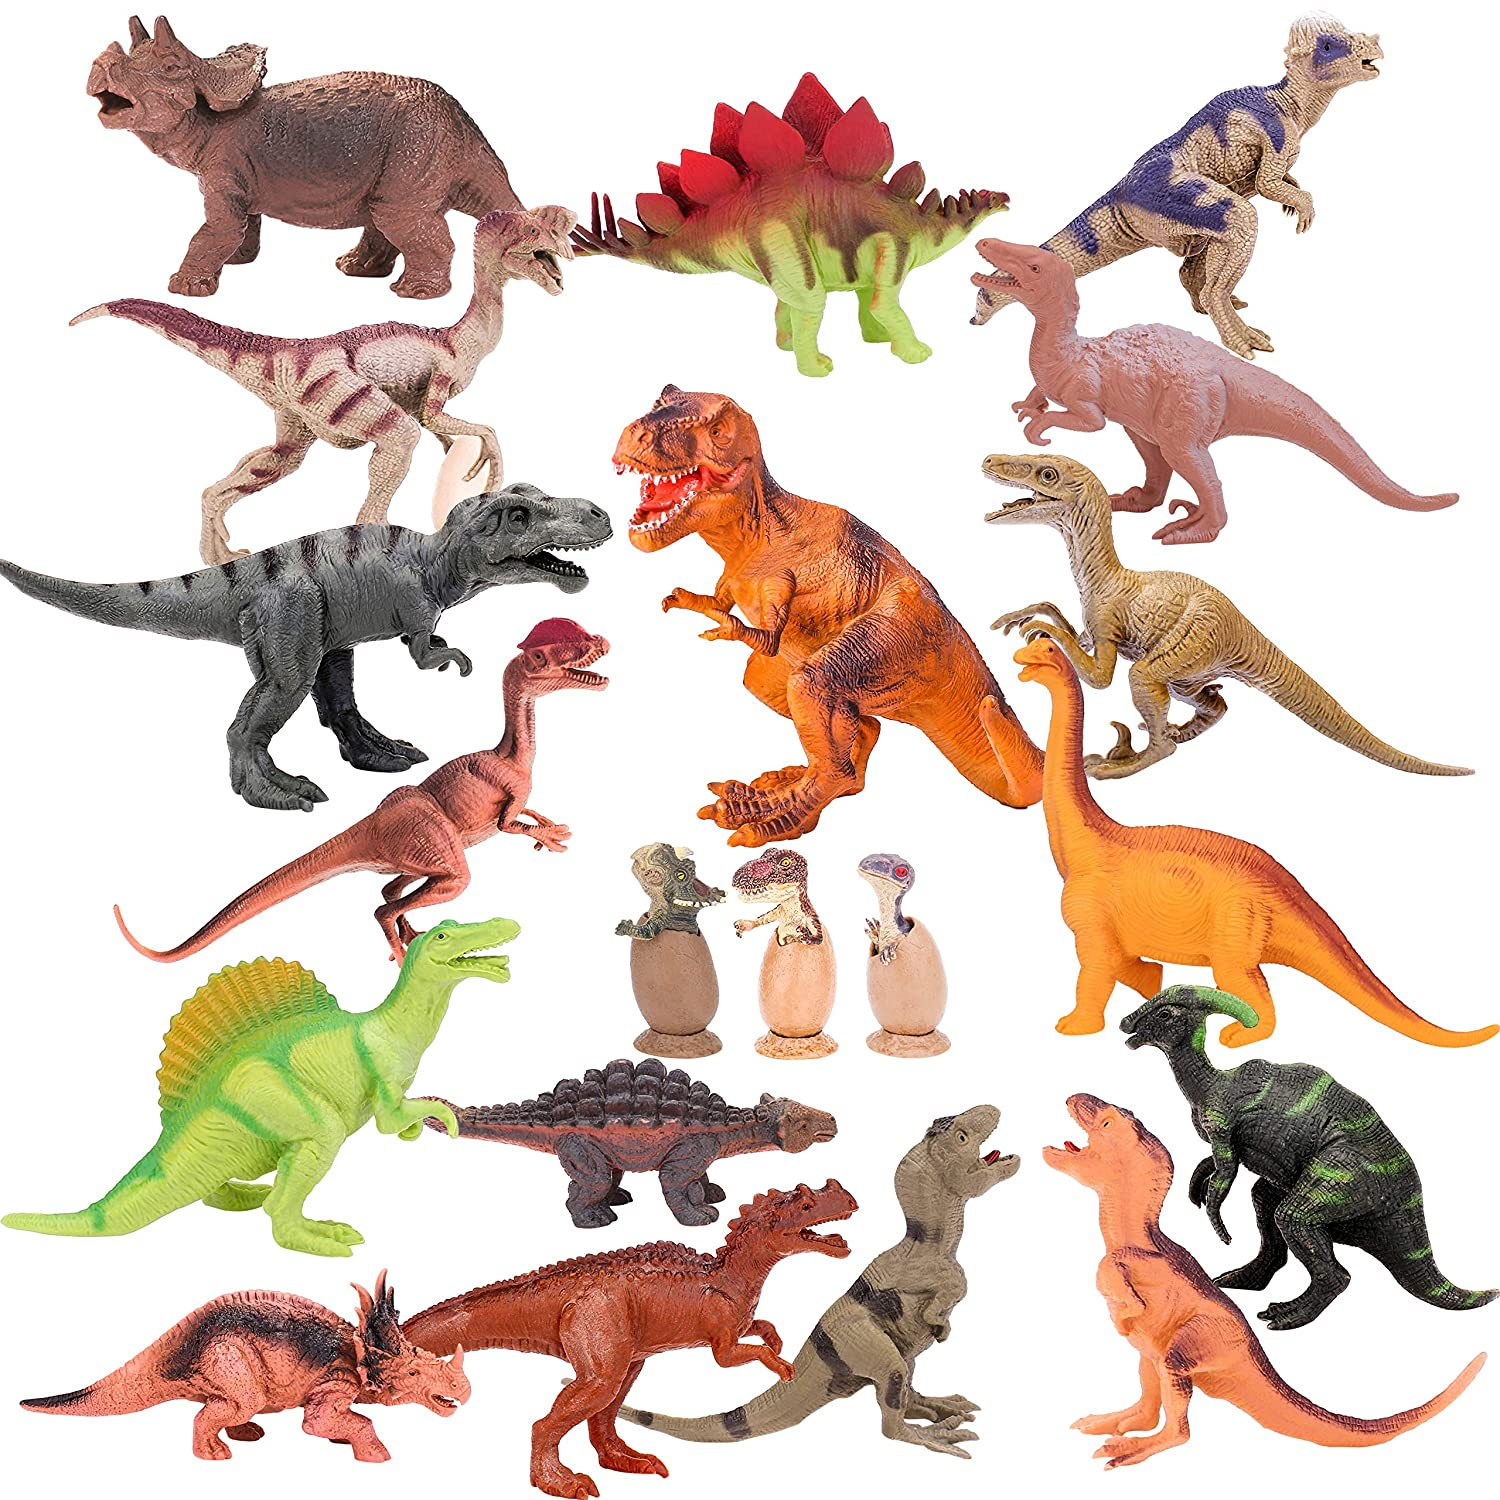 Dinosaur Toy Play Set Jumbo Animal Kids Toddler Pretend Figures 5 Piece New Animals & Dinosaurs